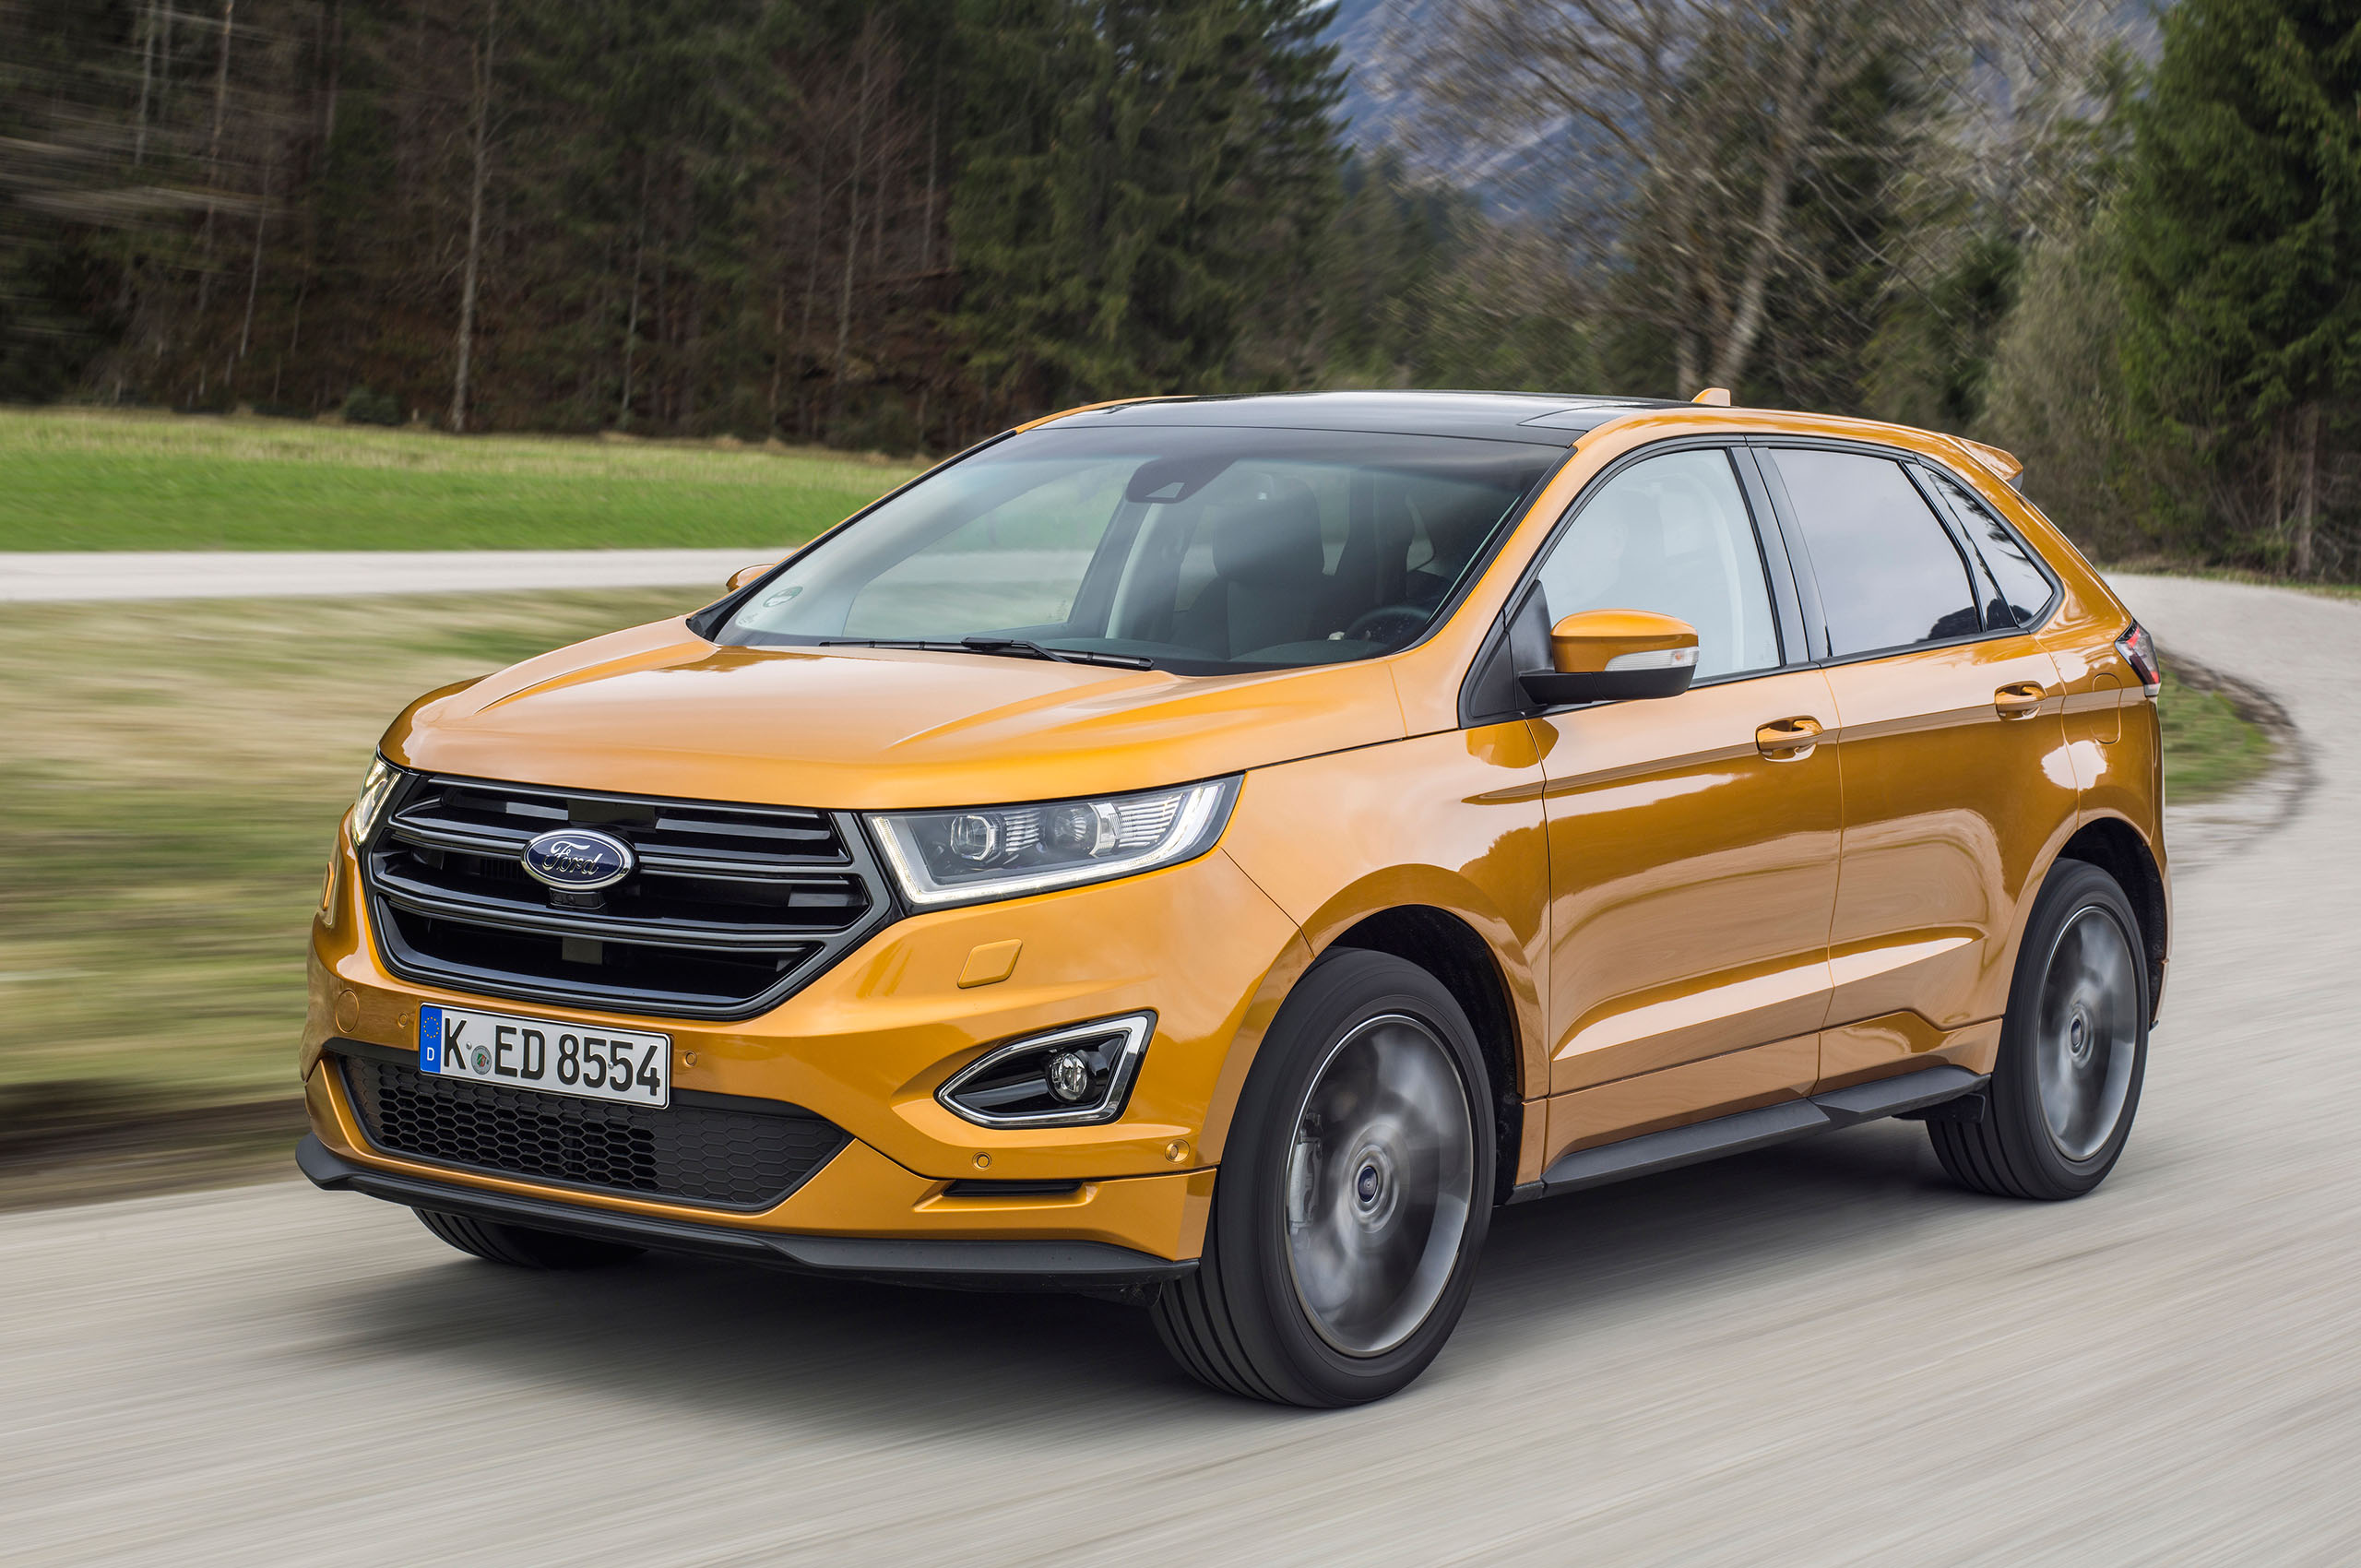 expedition size midsize best lease full suv ford